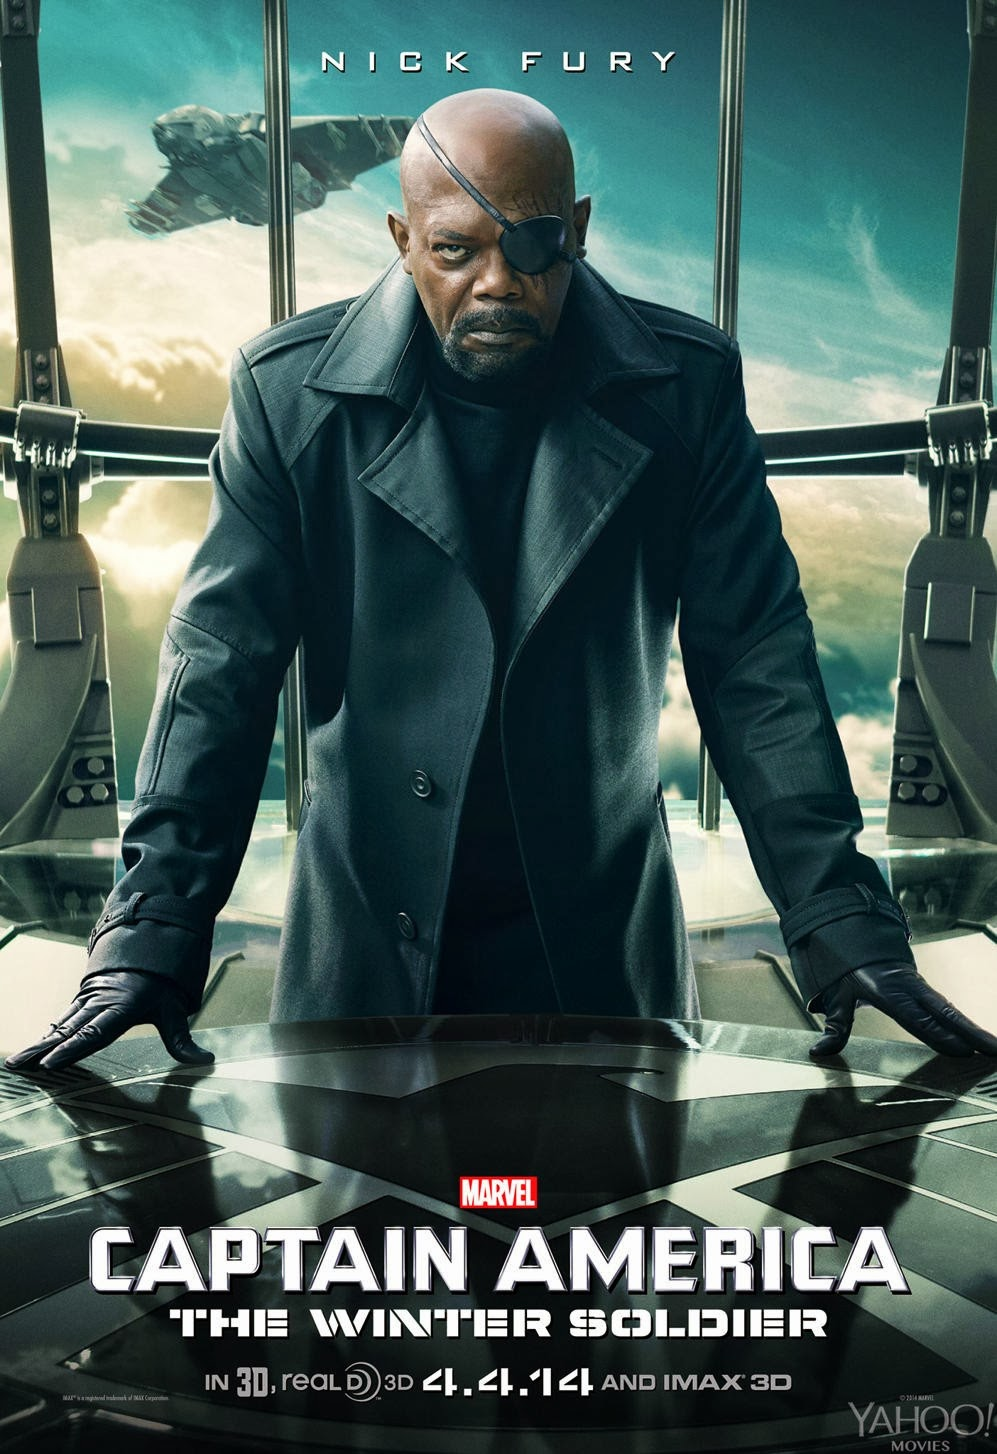 Captain America: The Winter Soldier Teaser Character Movie Poster Set - Samuel L. Jackson as Nick Fury